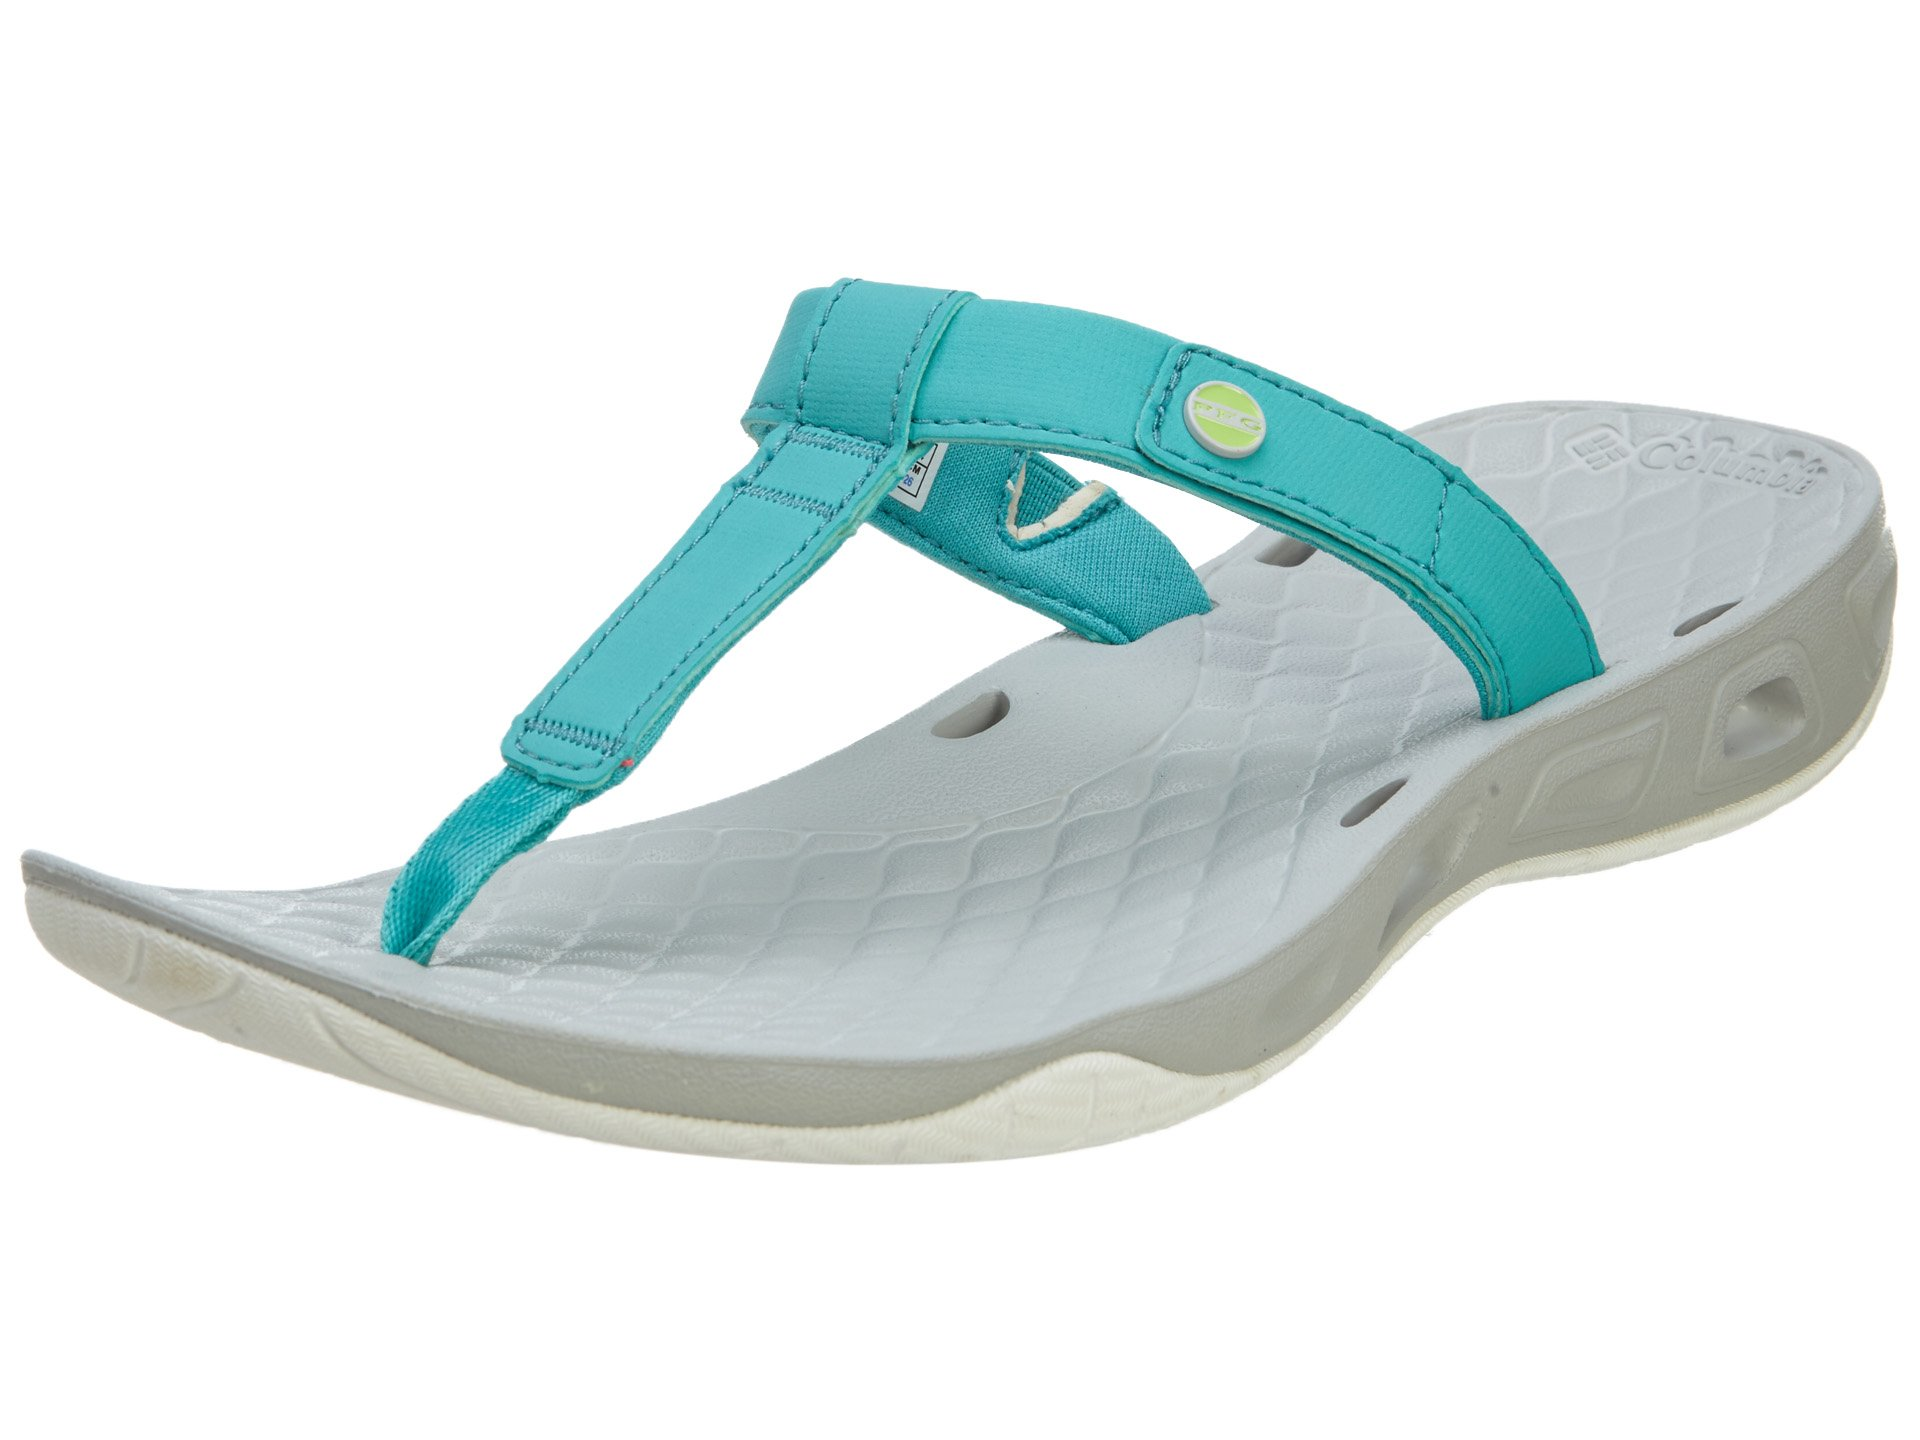 Columbia Sunlight Vent Flip PFG Casual Sandals Womens Style: BL4468-354 Size: 8 by Columbia